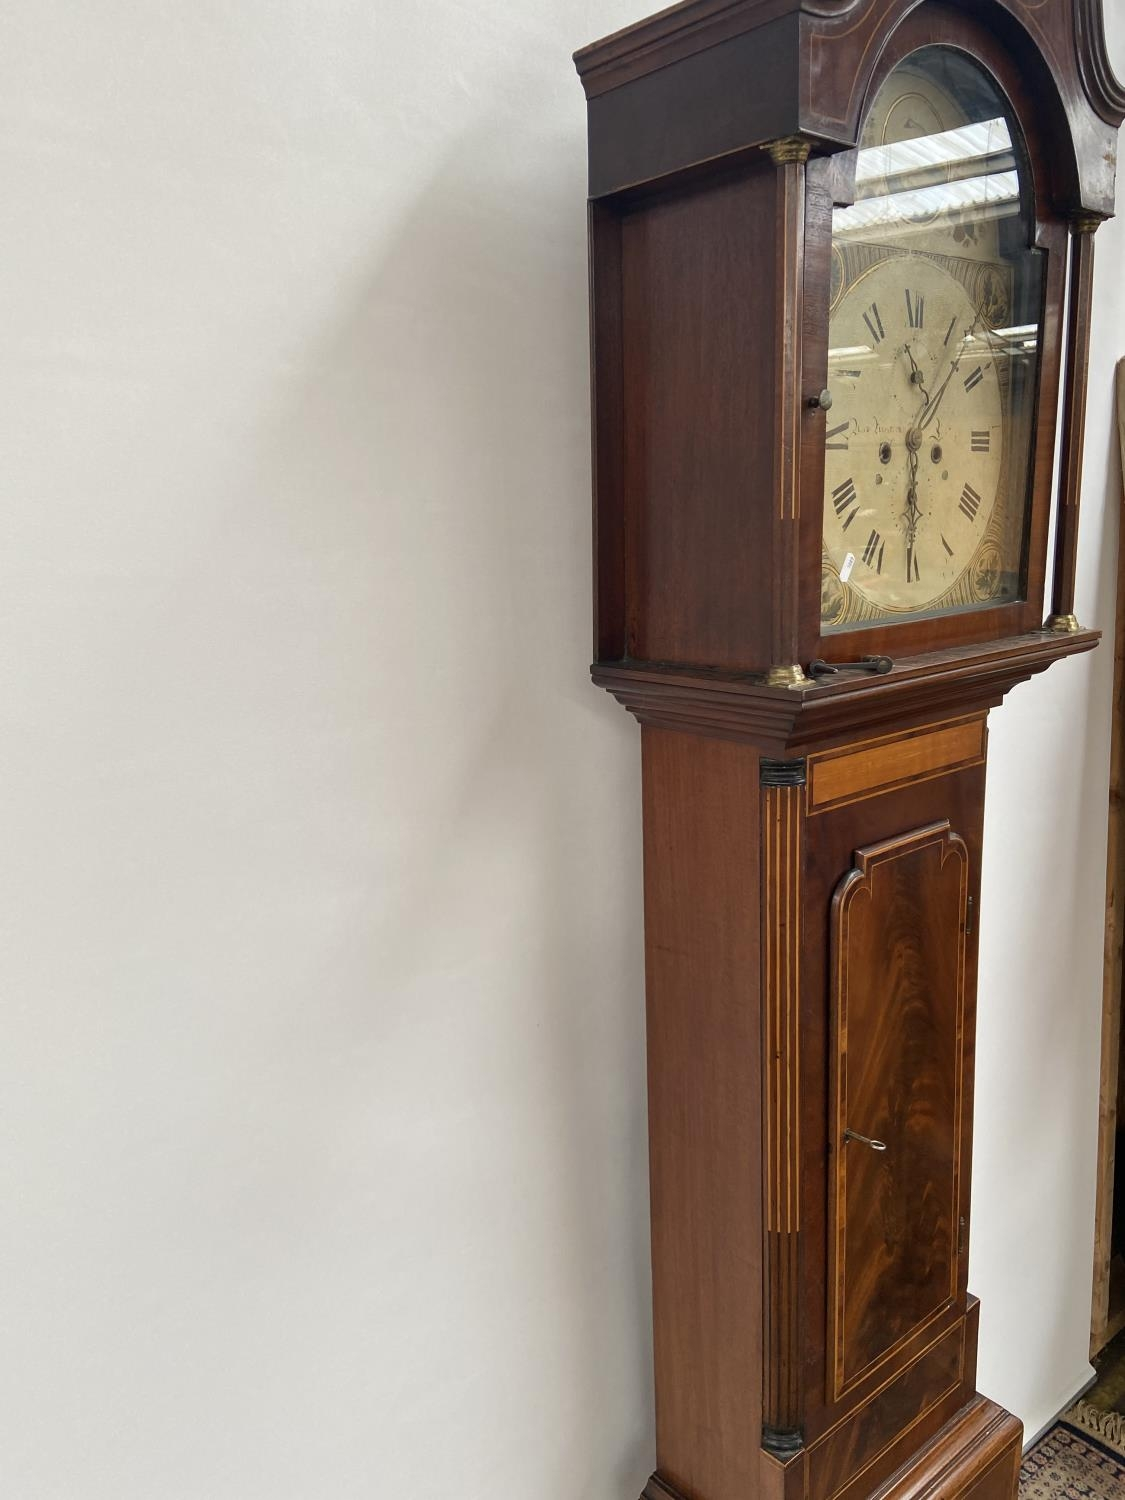 A 19th century Grandfather clock in a working condition [24x44x24cm] - Image 9 of 12